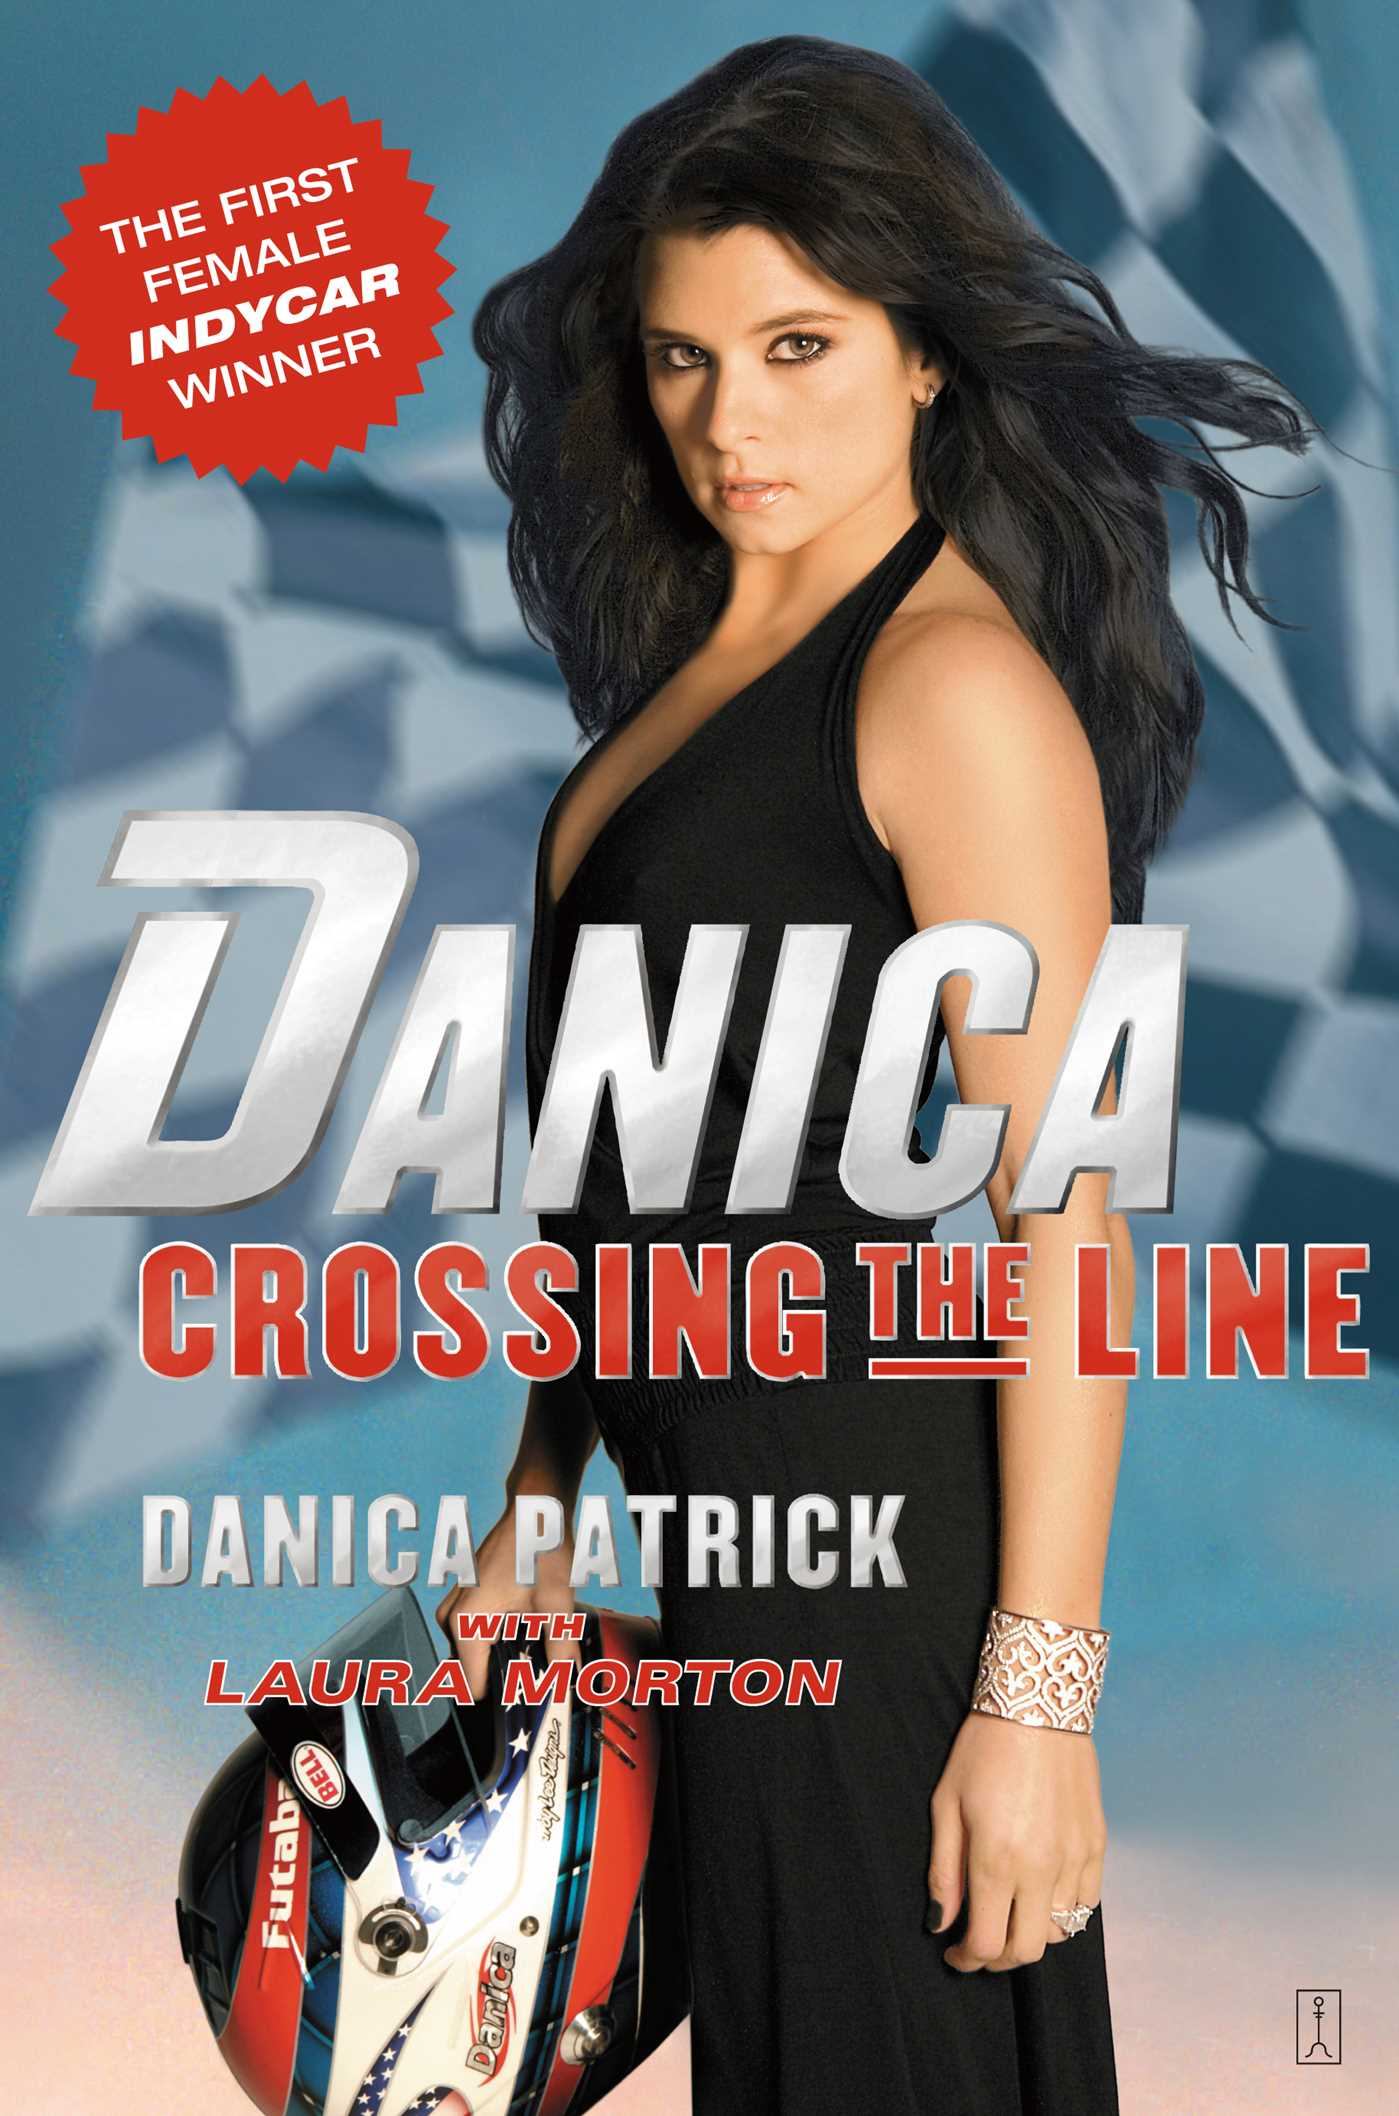 Danica crossing the line 9781439105252 hr